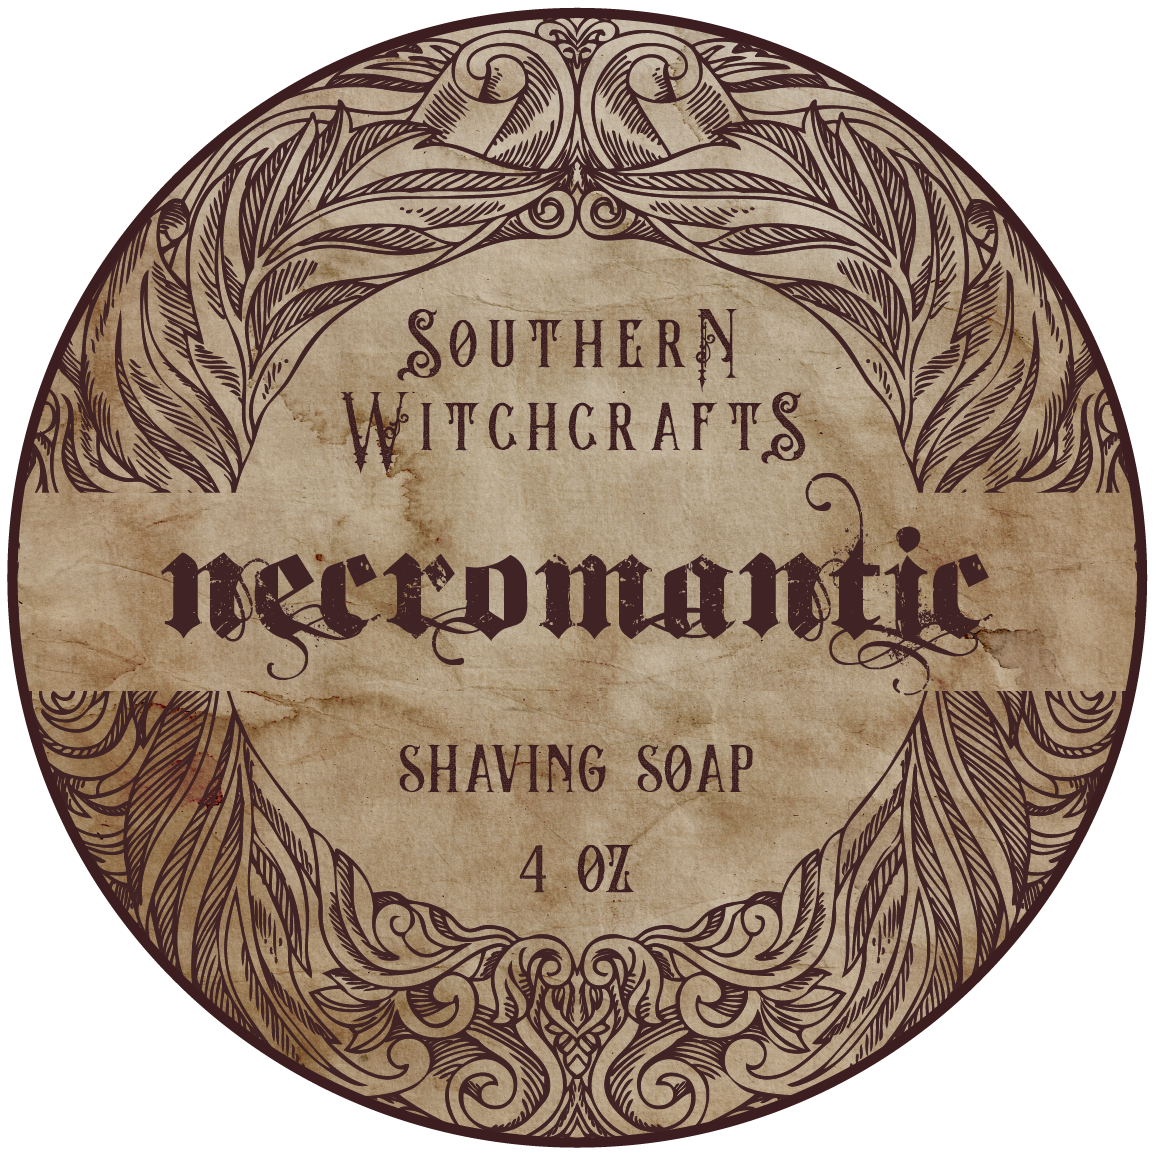 Southern Witchcrafts - Necromantic - Soap (Vegan) image